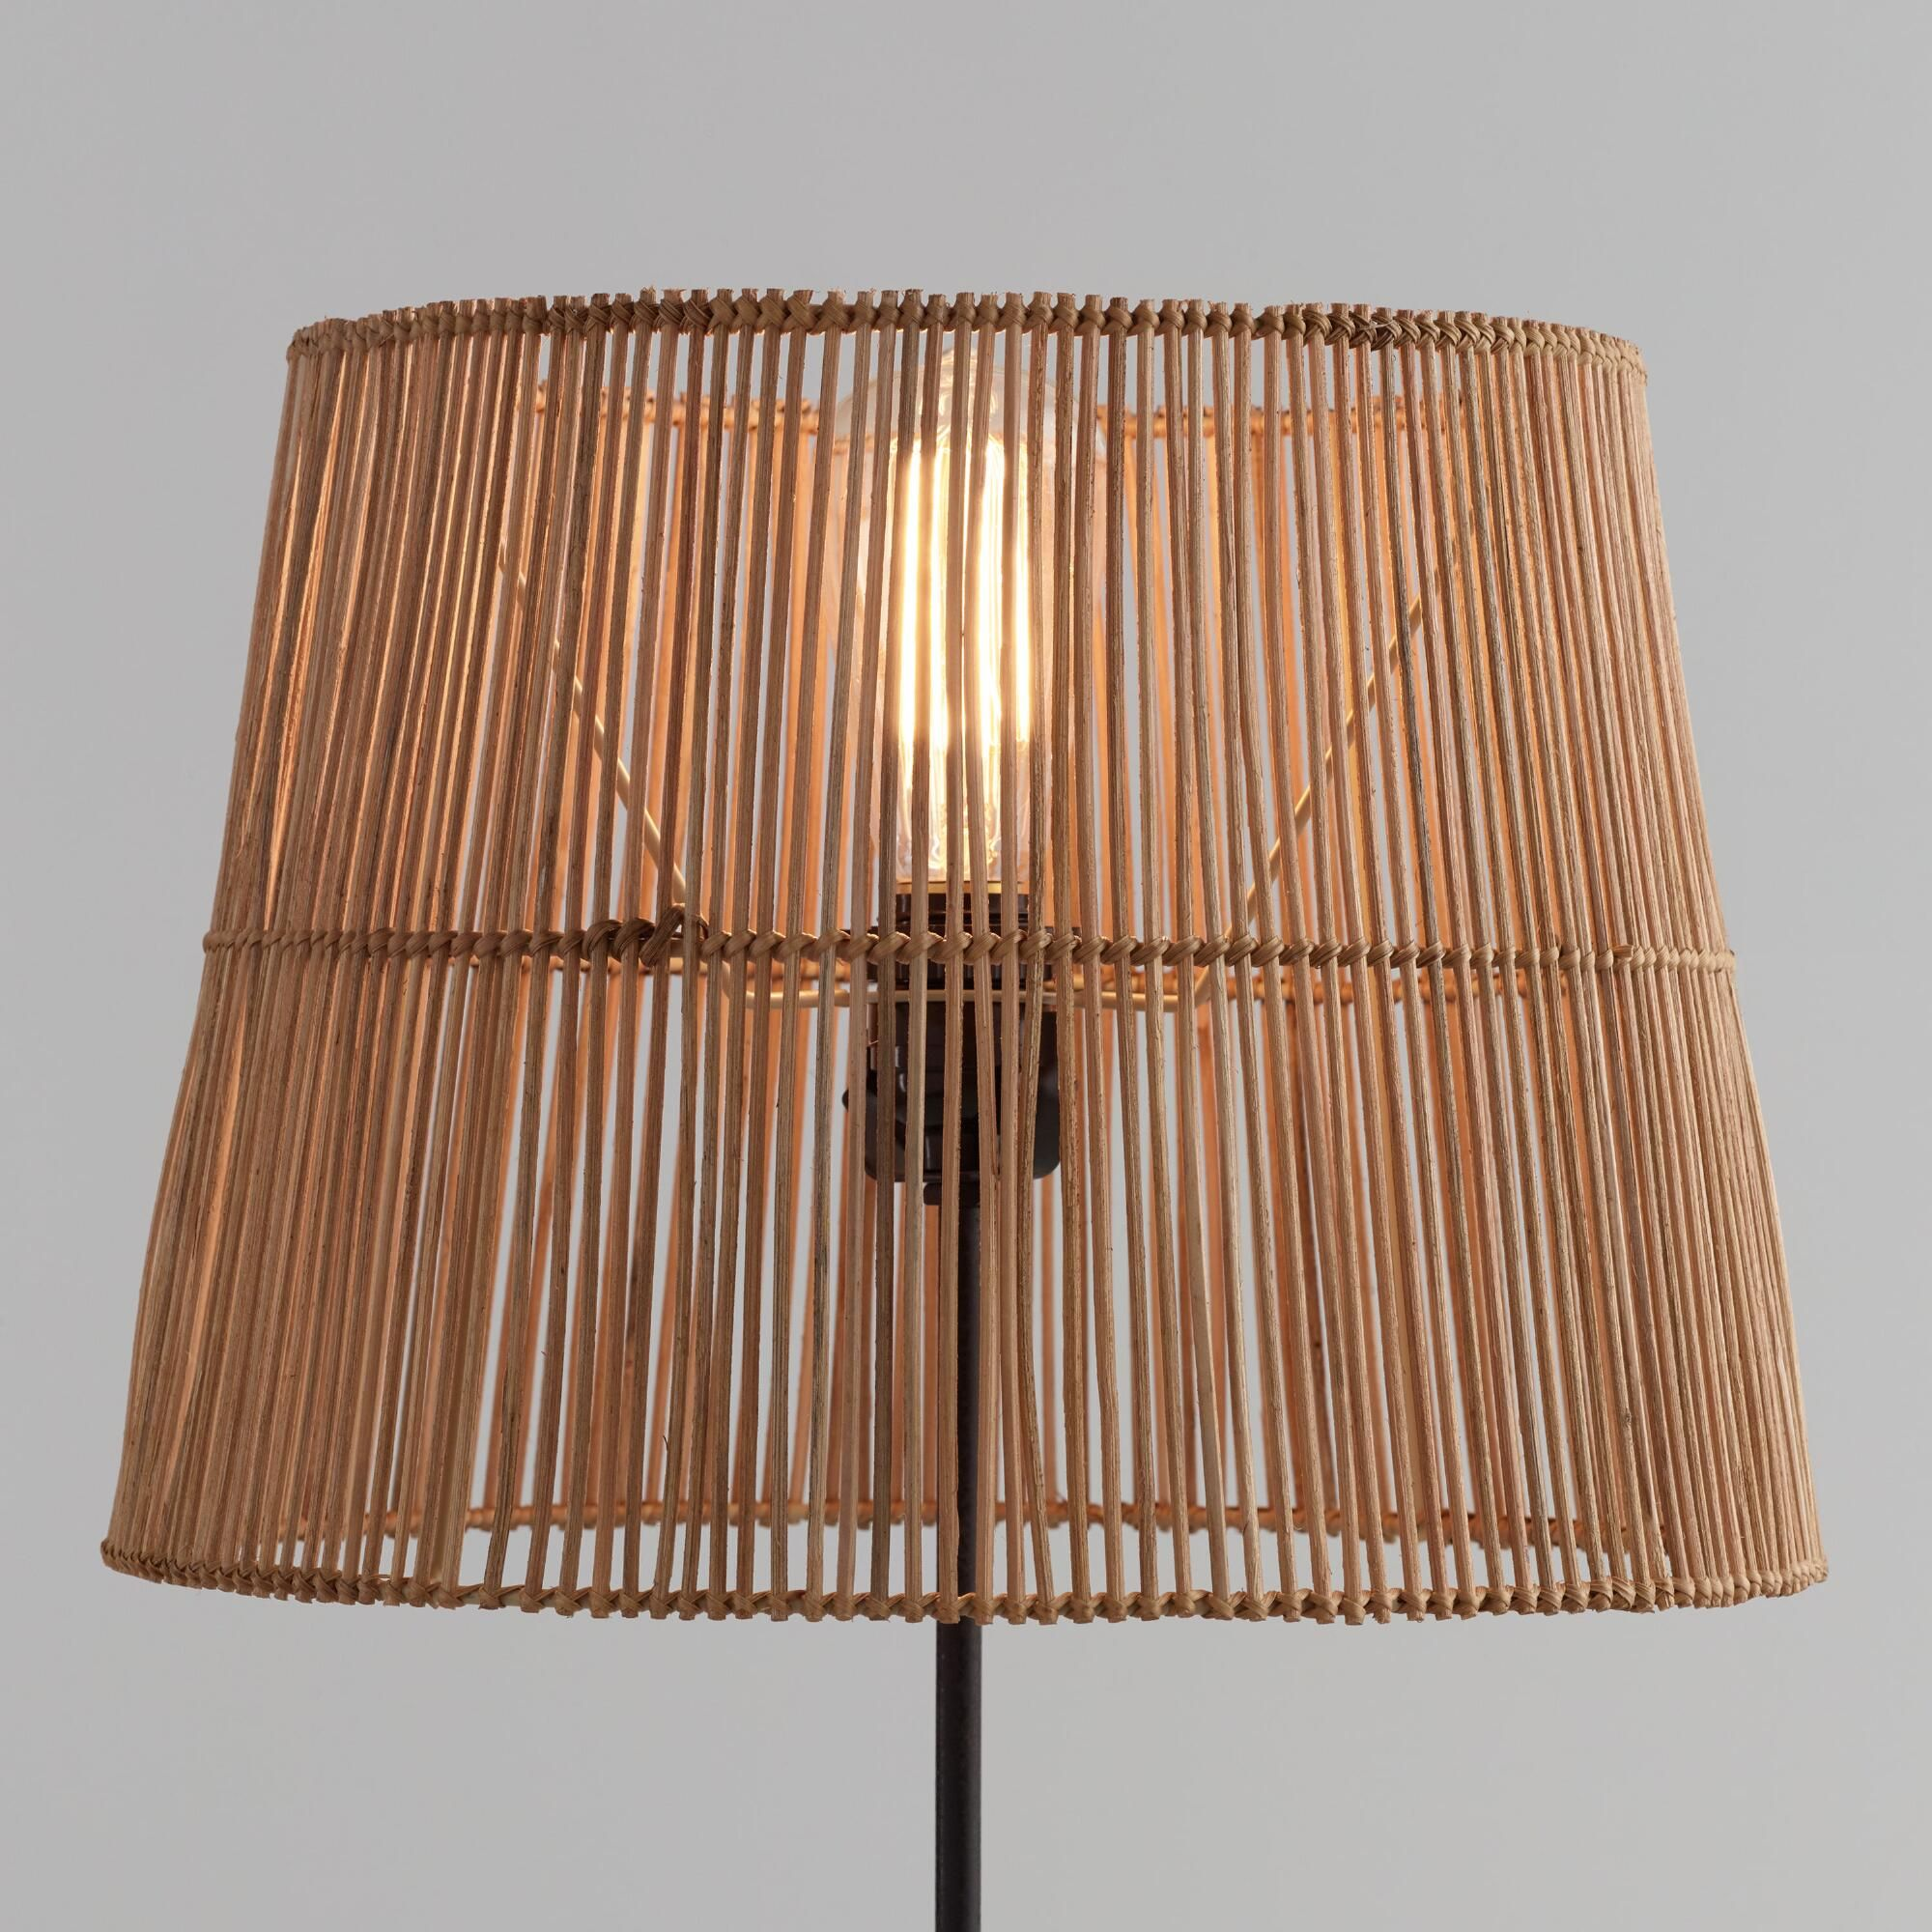 Natural Rattan Table Lamp Shade By World Market In 2018 Products